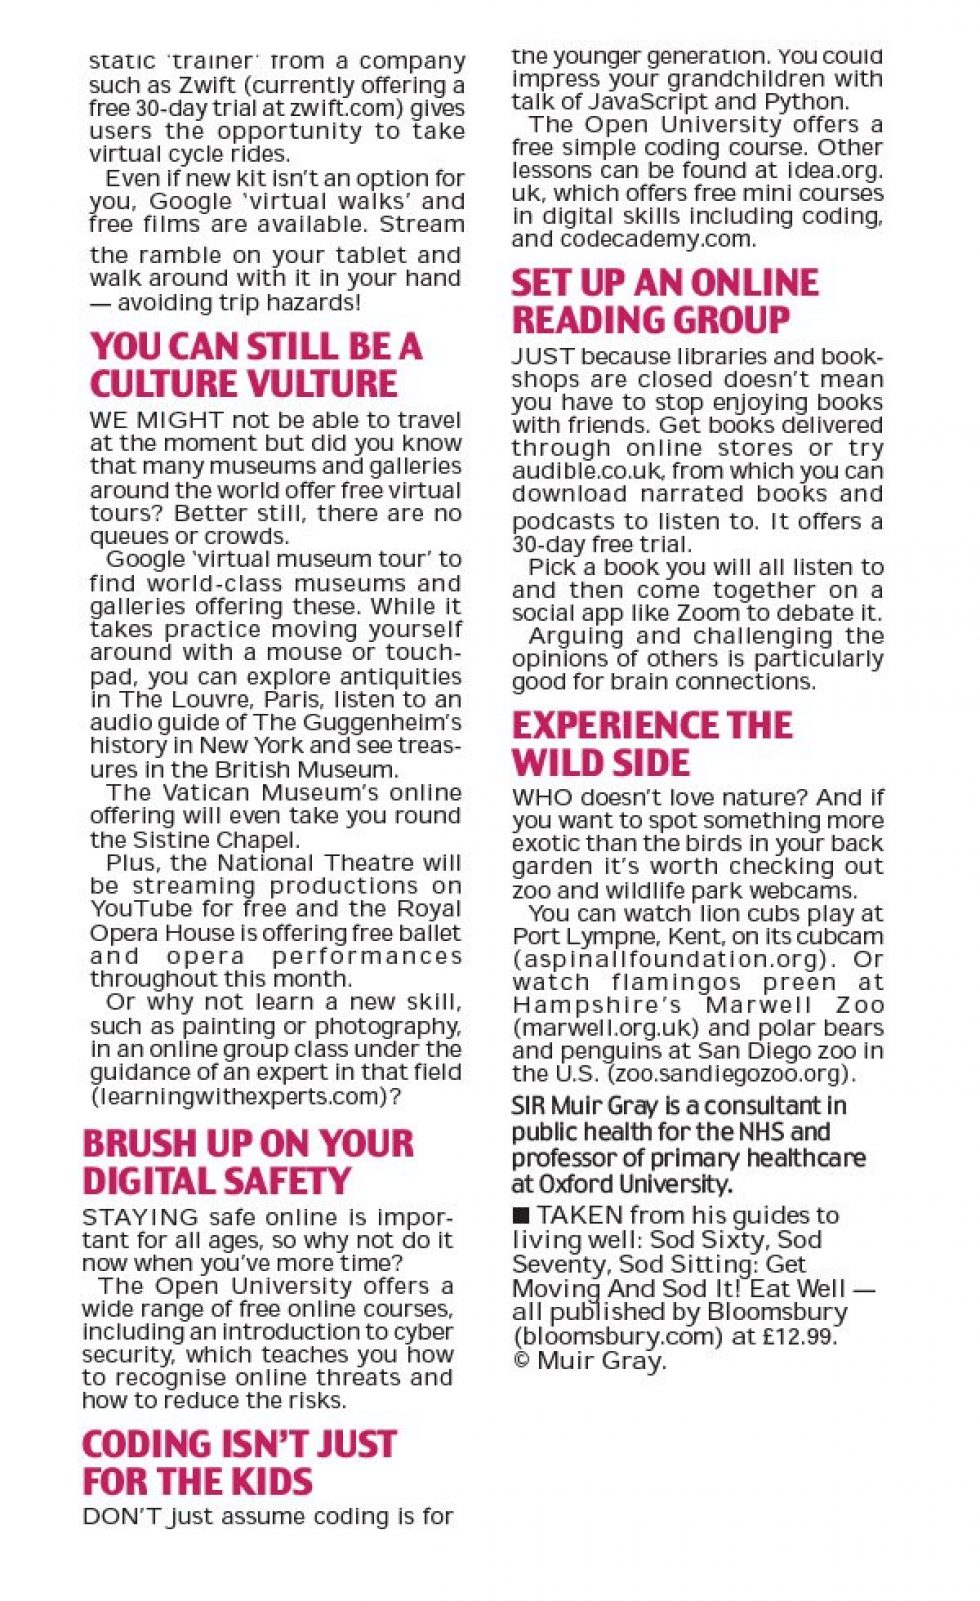 Coverage for Learning with Experts in The Daily Mail, 2020-04-03